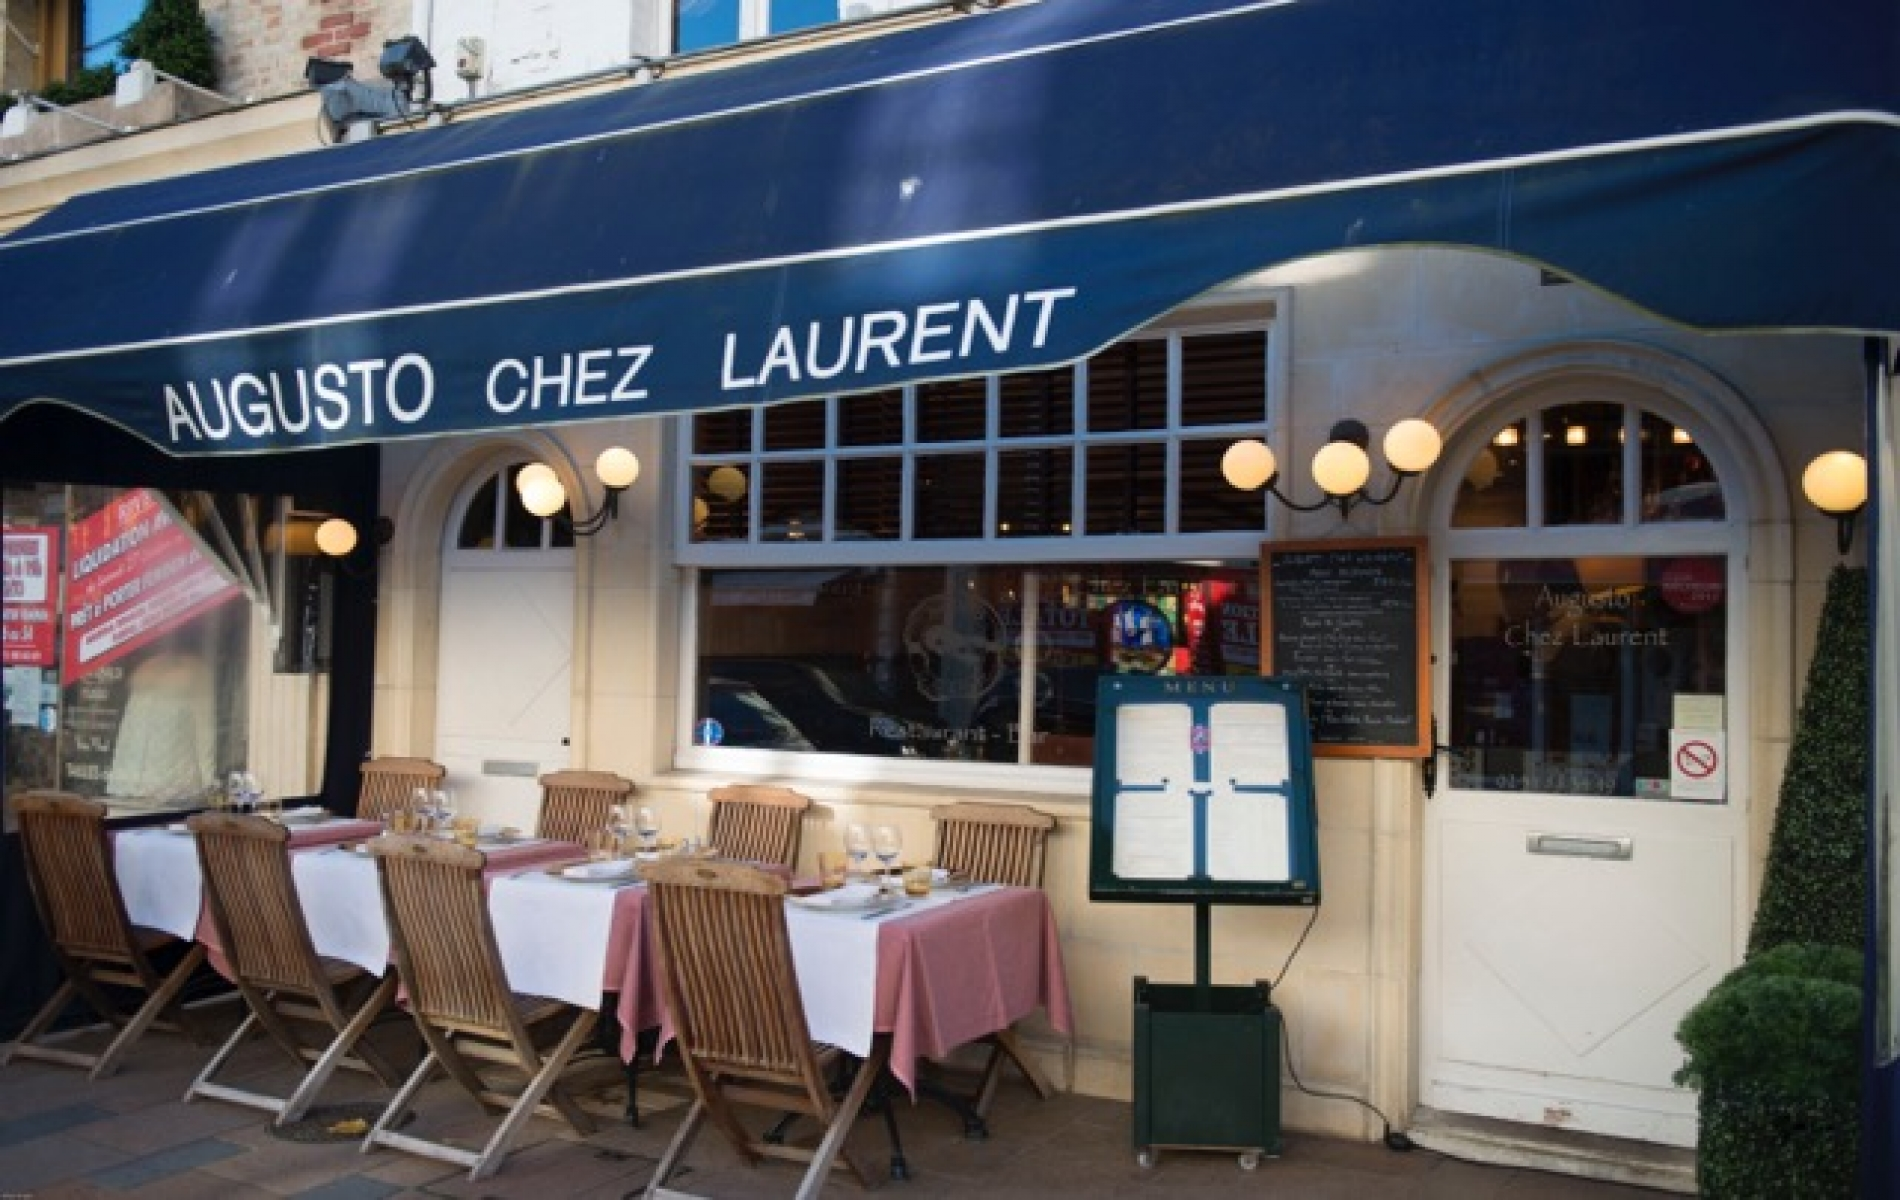 Restaurant Augusto chez Laurent